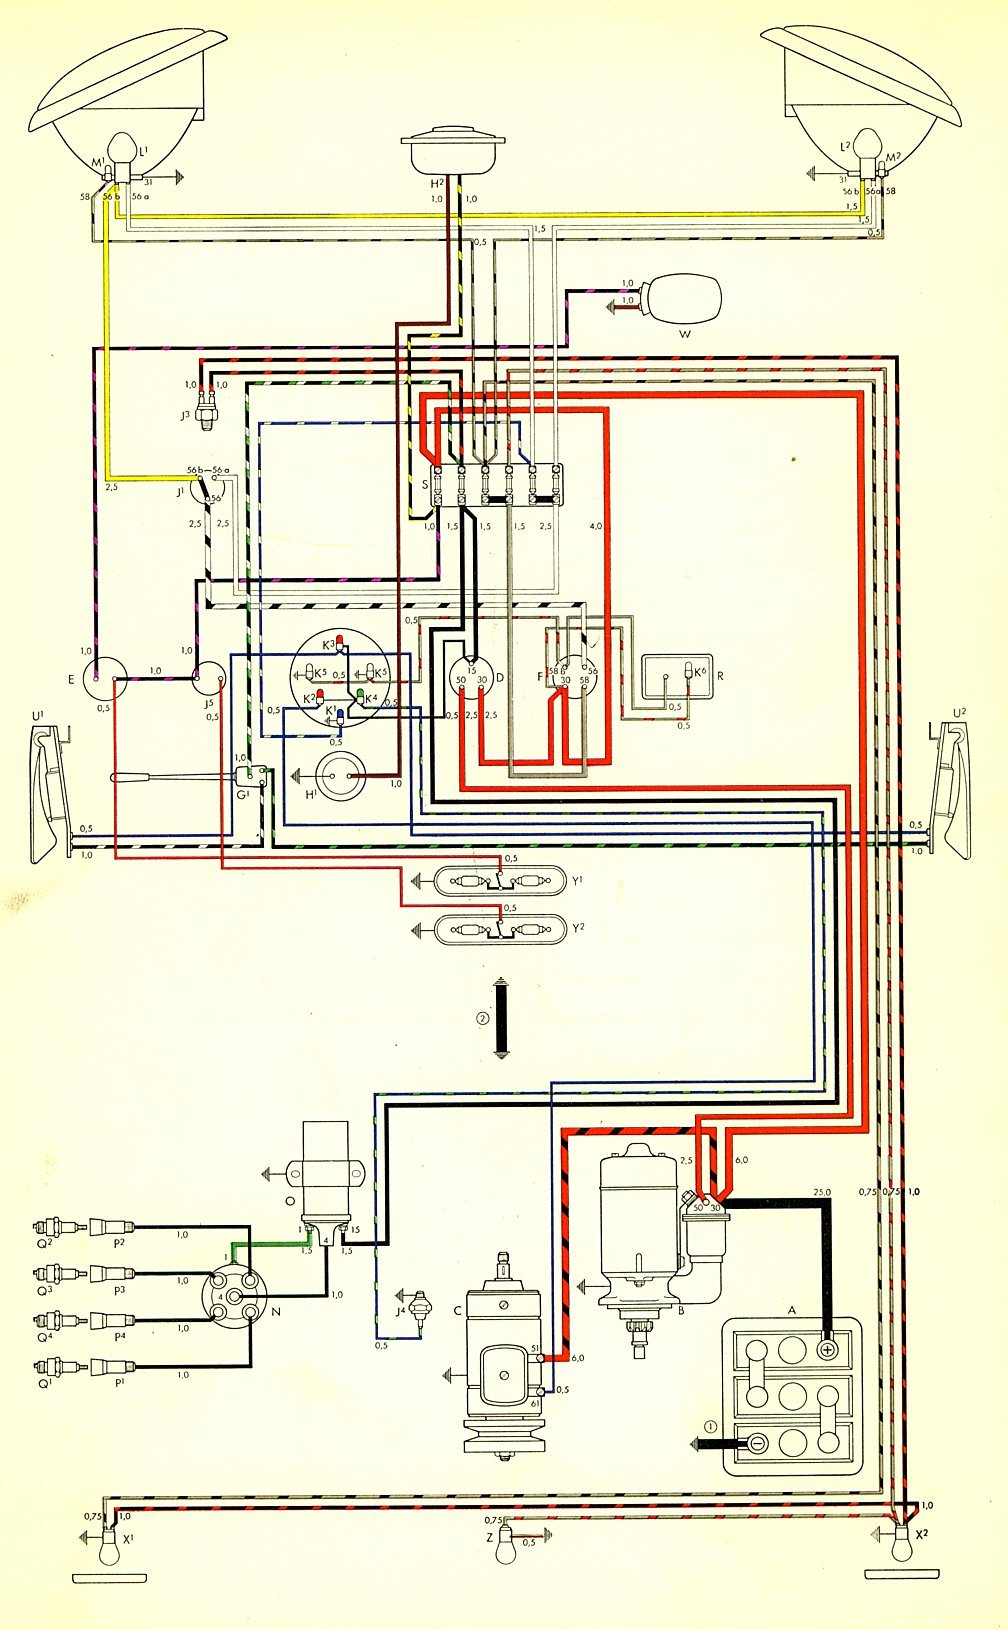 bus_59 thesamba com type 2 wiring diagrams 1970 vw wiring diagram at mifinder.co